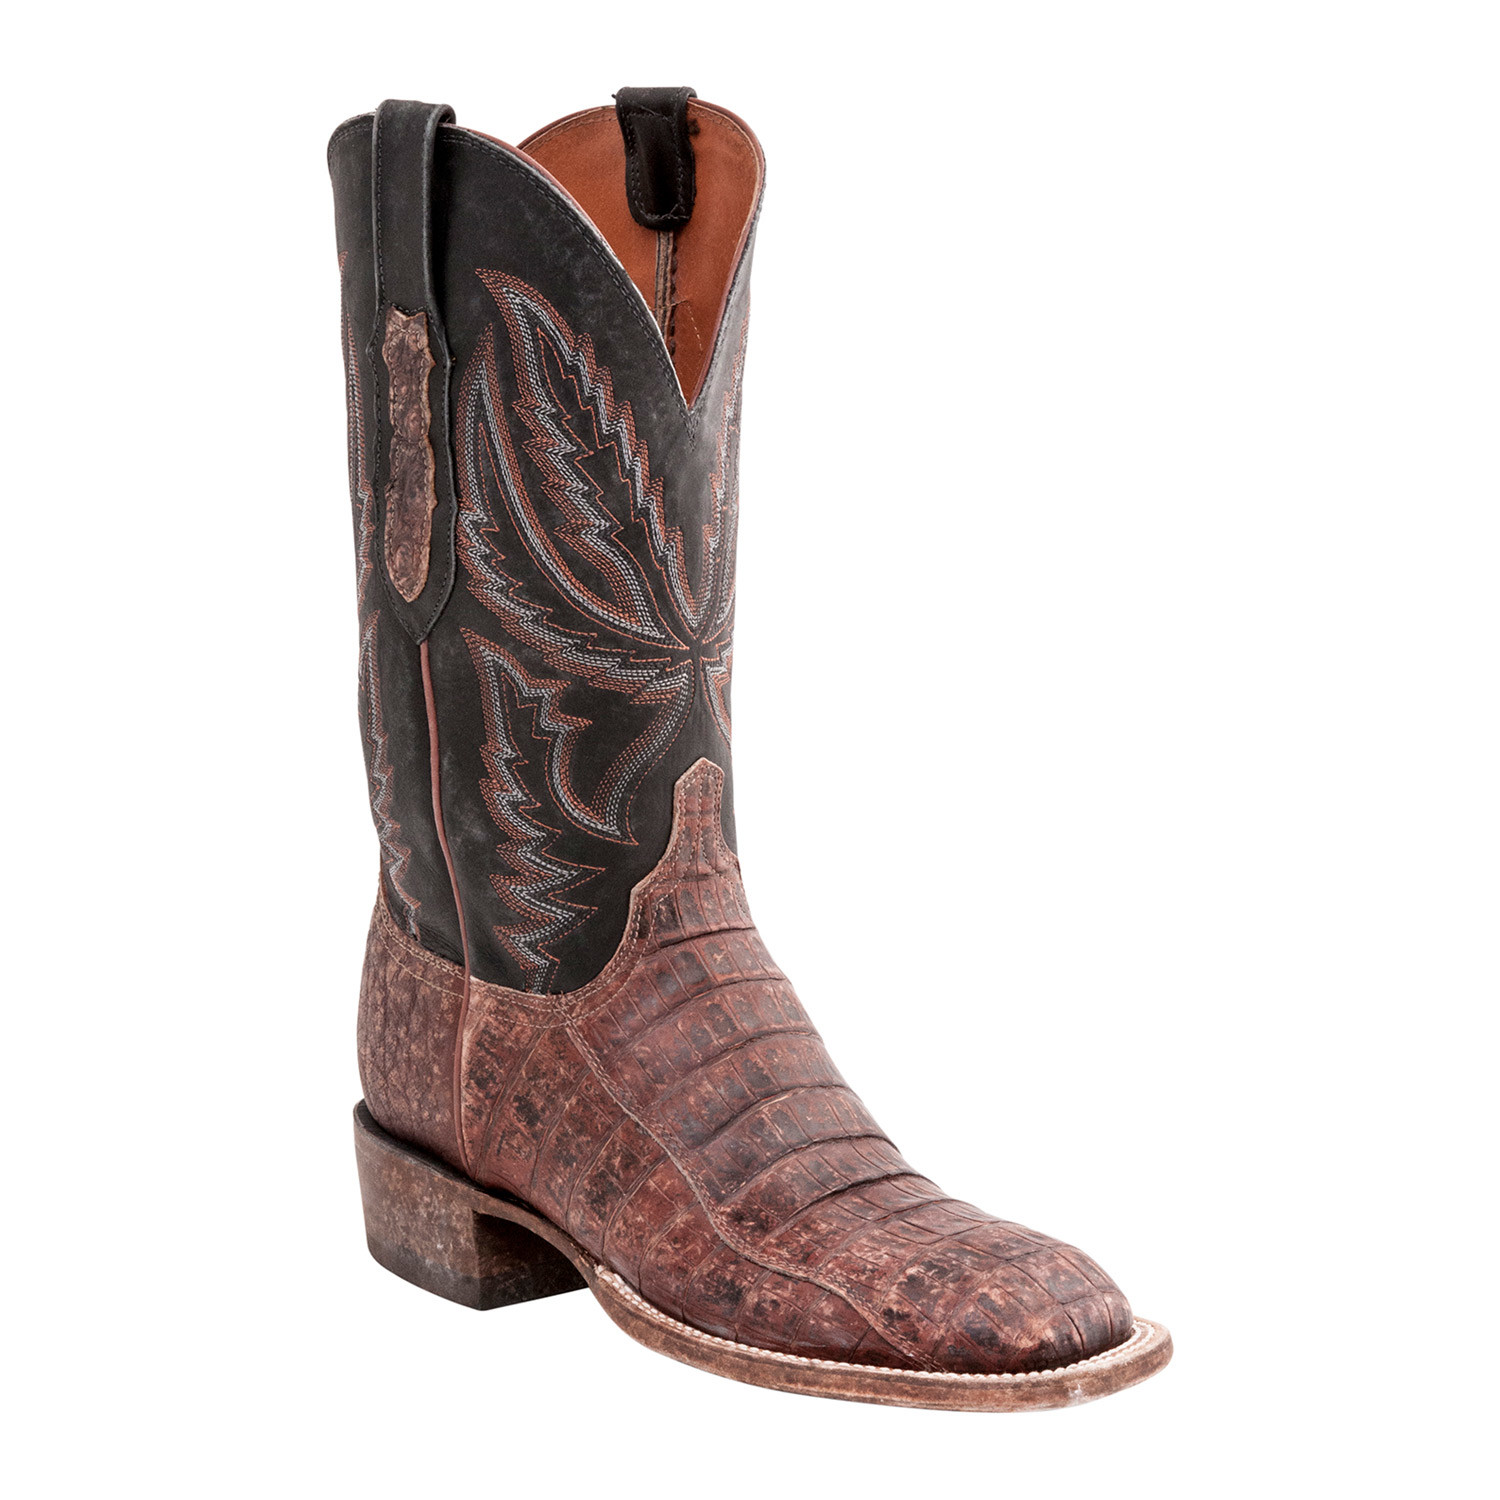 Caiman Crocodile Belly Tail Horseman Style Boot Rust Belize Us 8 5